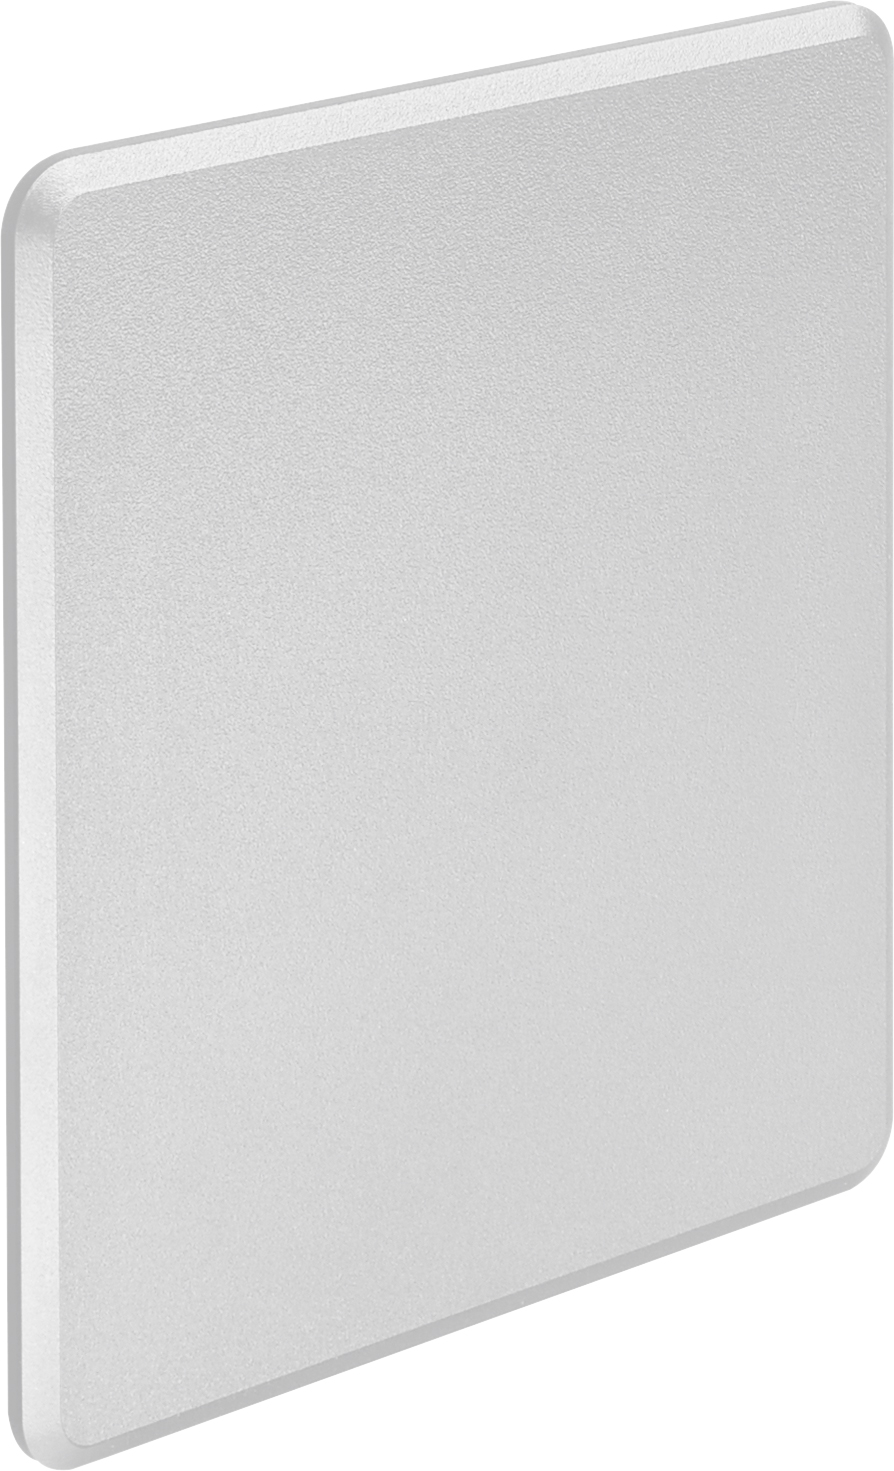 Arlington DVFRC Combo Cover In White